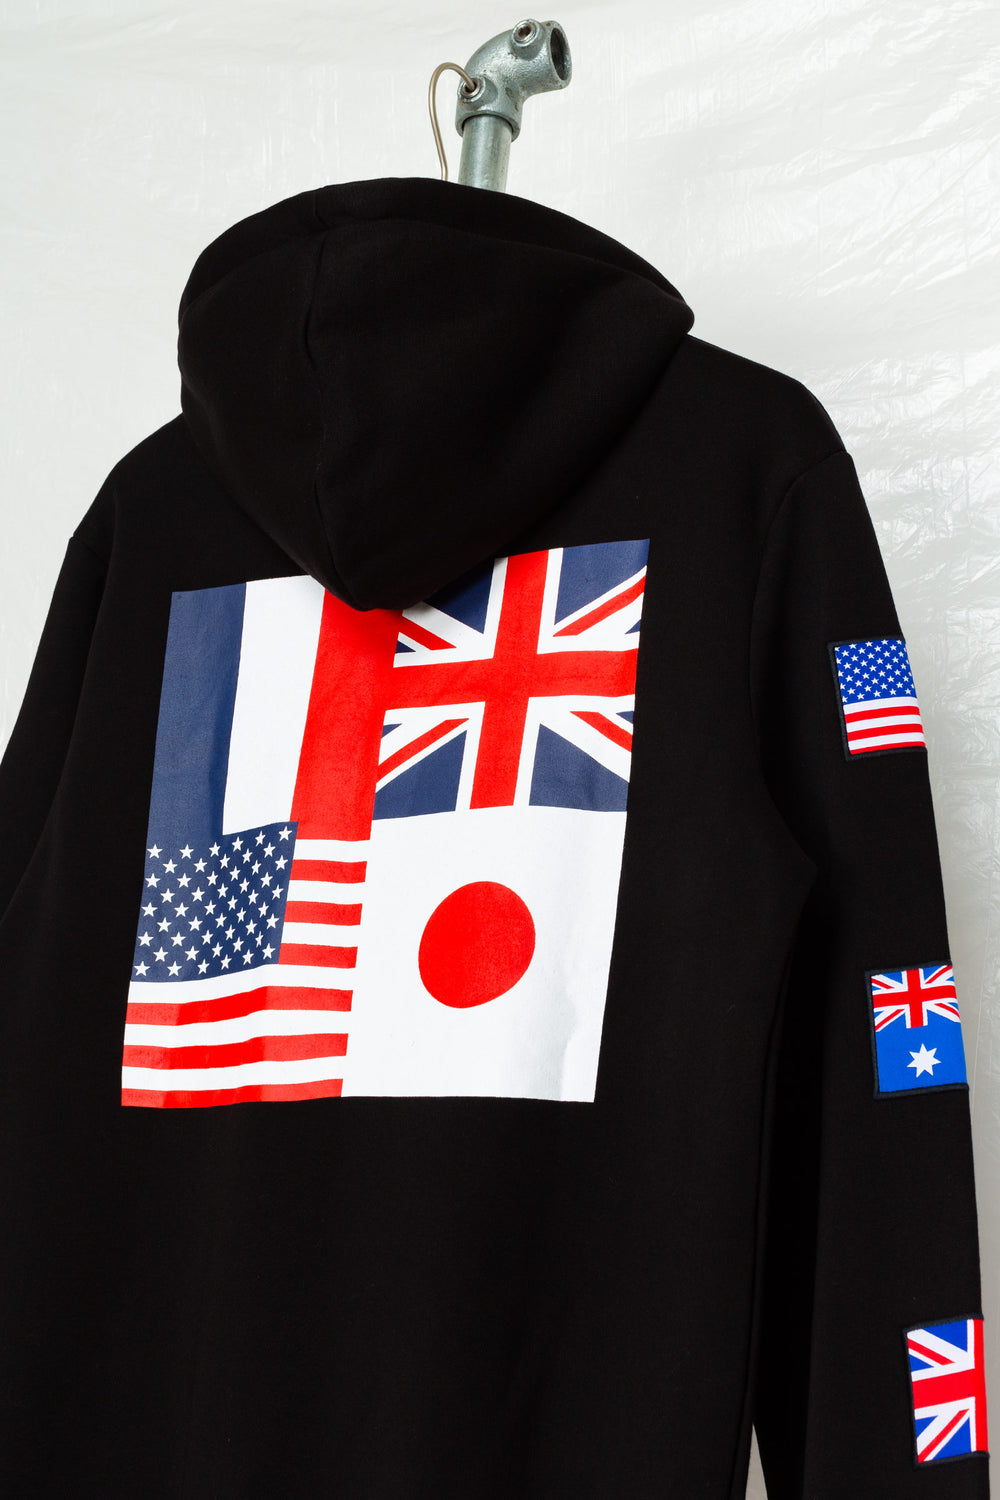 SOCIETY SPORT FLAGS 93 BLACK PULLOVER